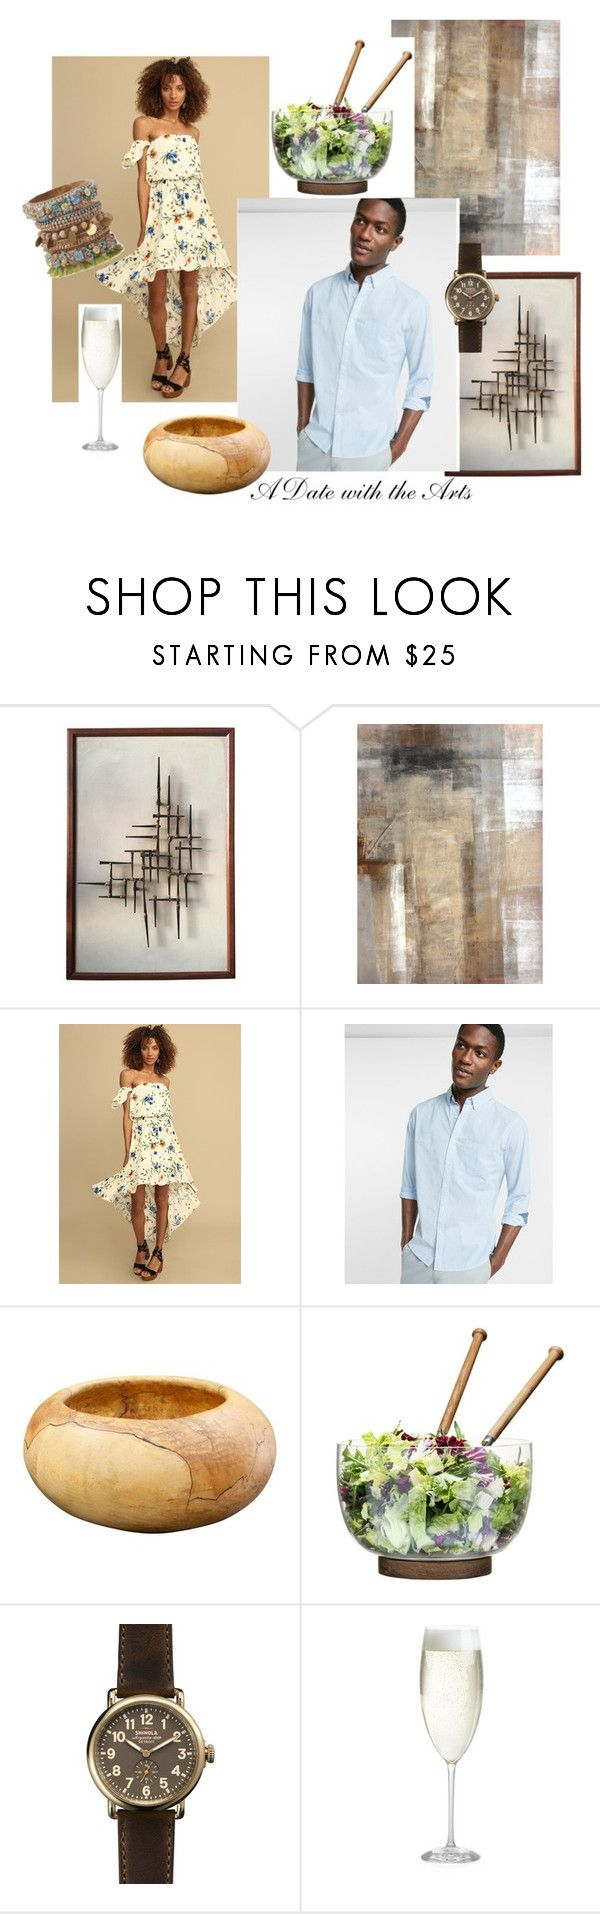 """""""A Date with the Arts"""" by glamorousmoms on Polyvore featuring Express, Sagaform, Shinola and Crate and Barrel"""